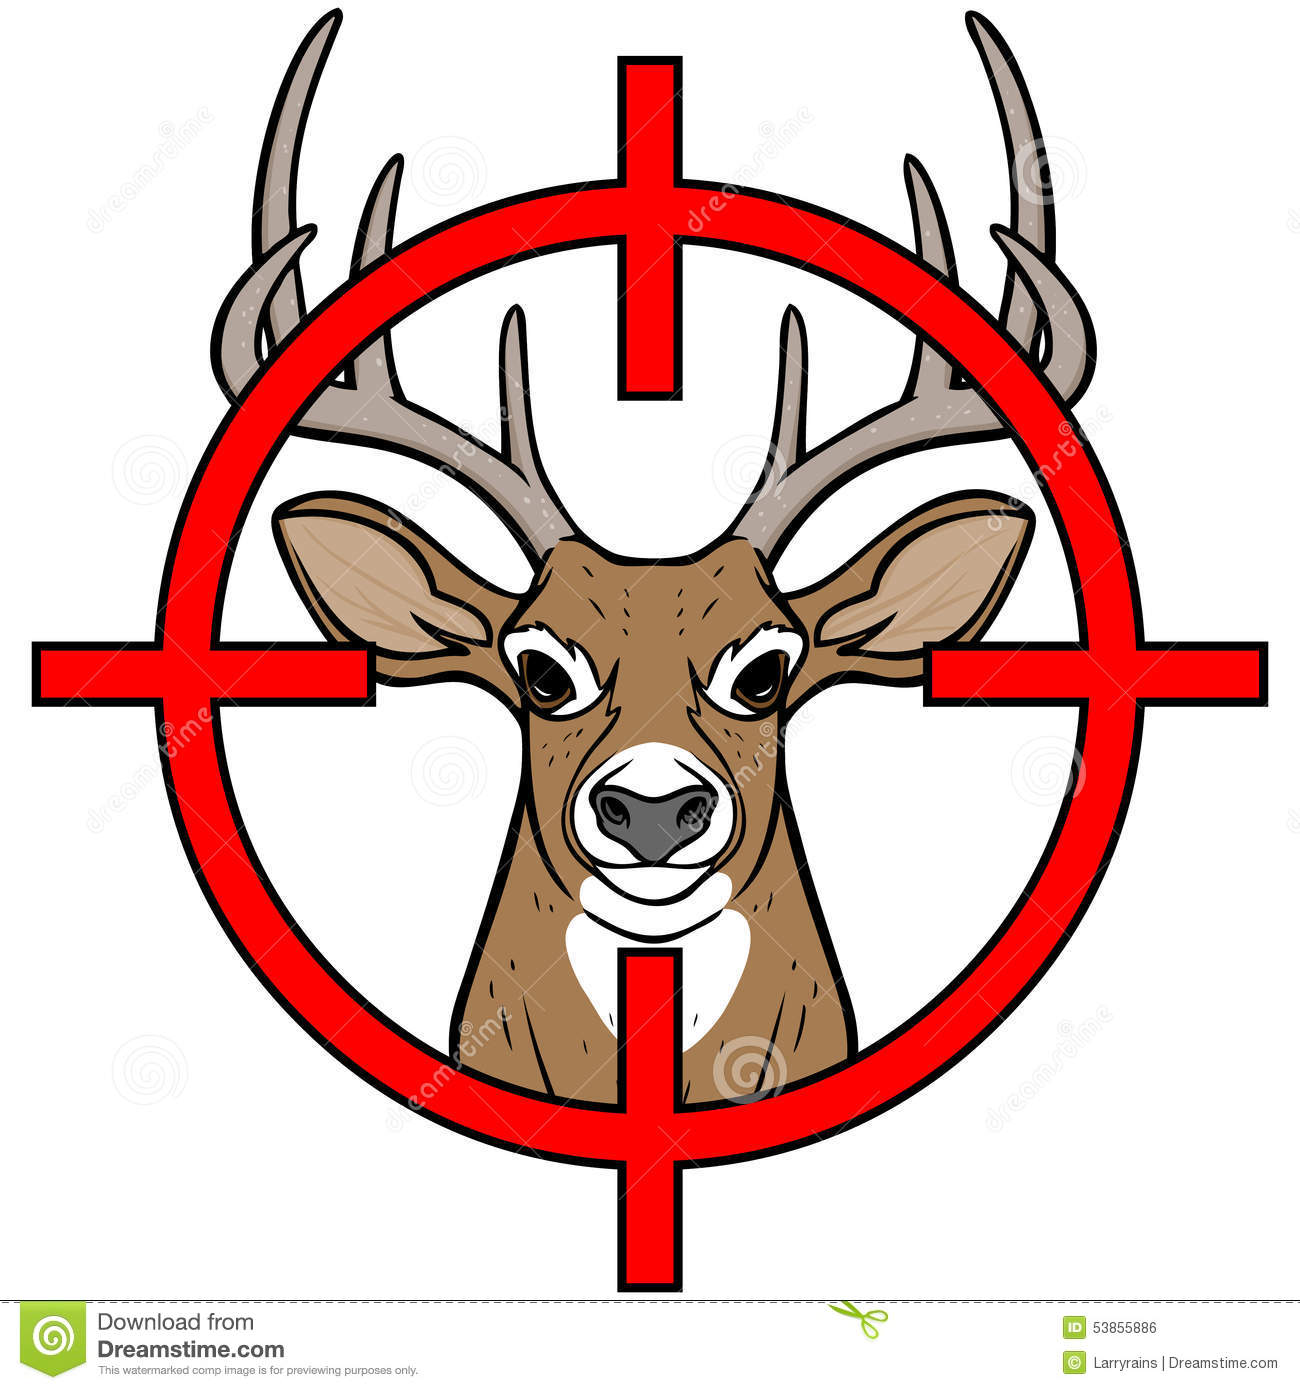 Hunter clipart deer rifle. Hunting free download best